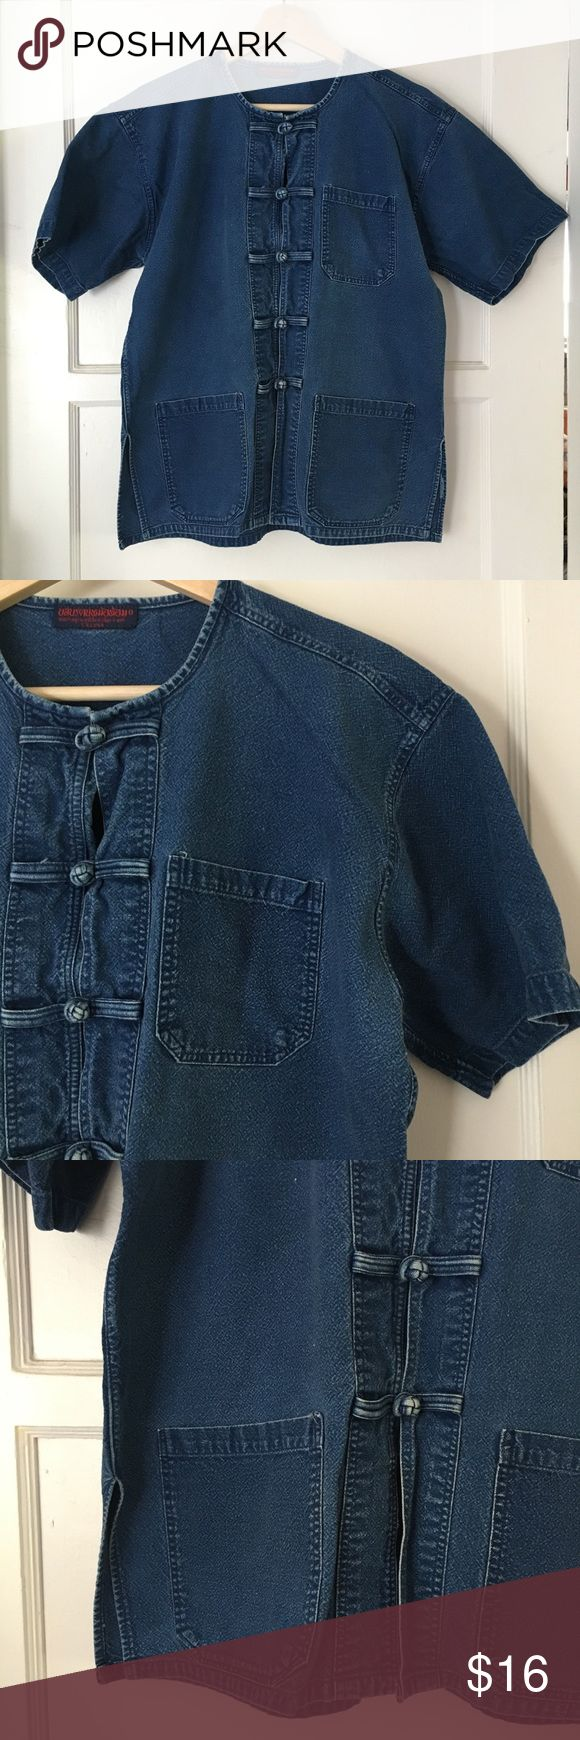 """Vintage Asian Denim Short Sleeved Shirt/Jacket This darling little lightweight boxy denim smock top could be worn as a shirt or short sleeved jacket. Three pockets! No stretch. Frog button closures are so cute! Well loved and nicely broken in—signs of wear in the dark denim, but no flaws on the outside. A small place inside where the seam is unraveling. See last photo. Can't translate label, but probably a large. See measurements below.   Width (pit-to-pit): 22"""" Length: 25"""" Approximate hand…"""